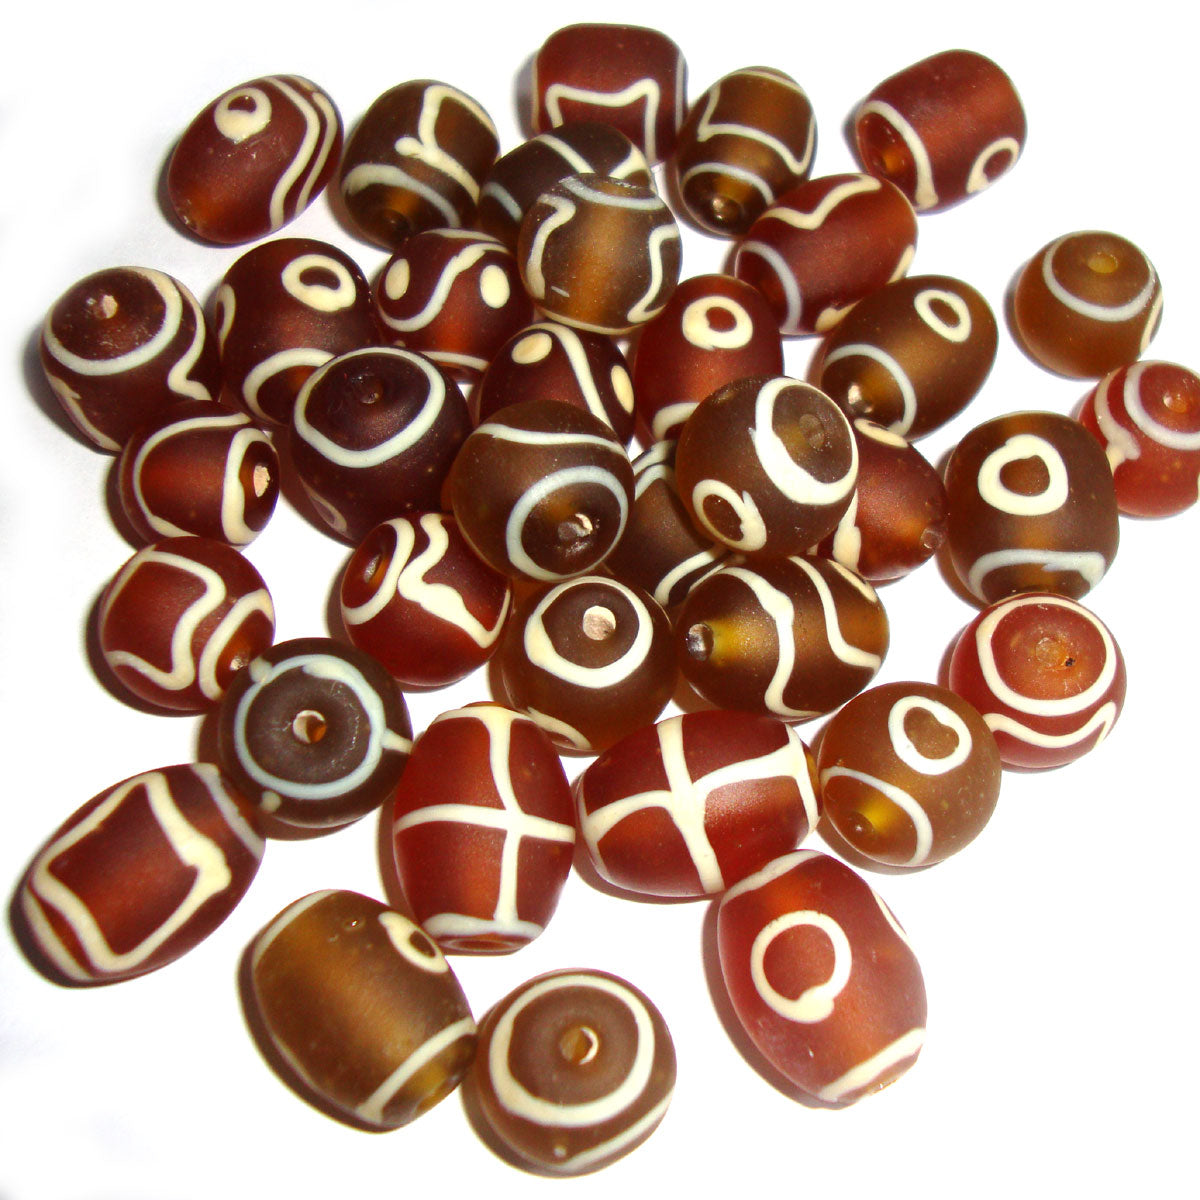 Various Shape Like Oval Round Tube Matt Brown Frosted Mix assortment Handmade Vintage glass beads